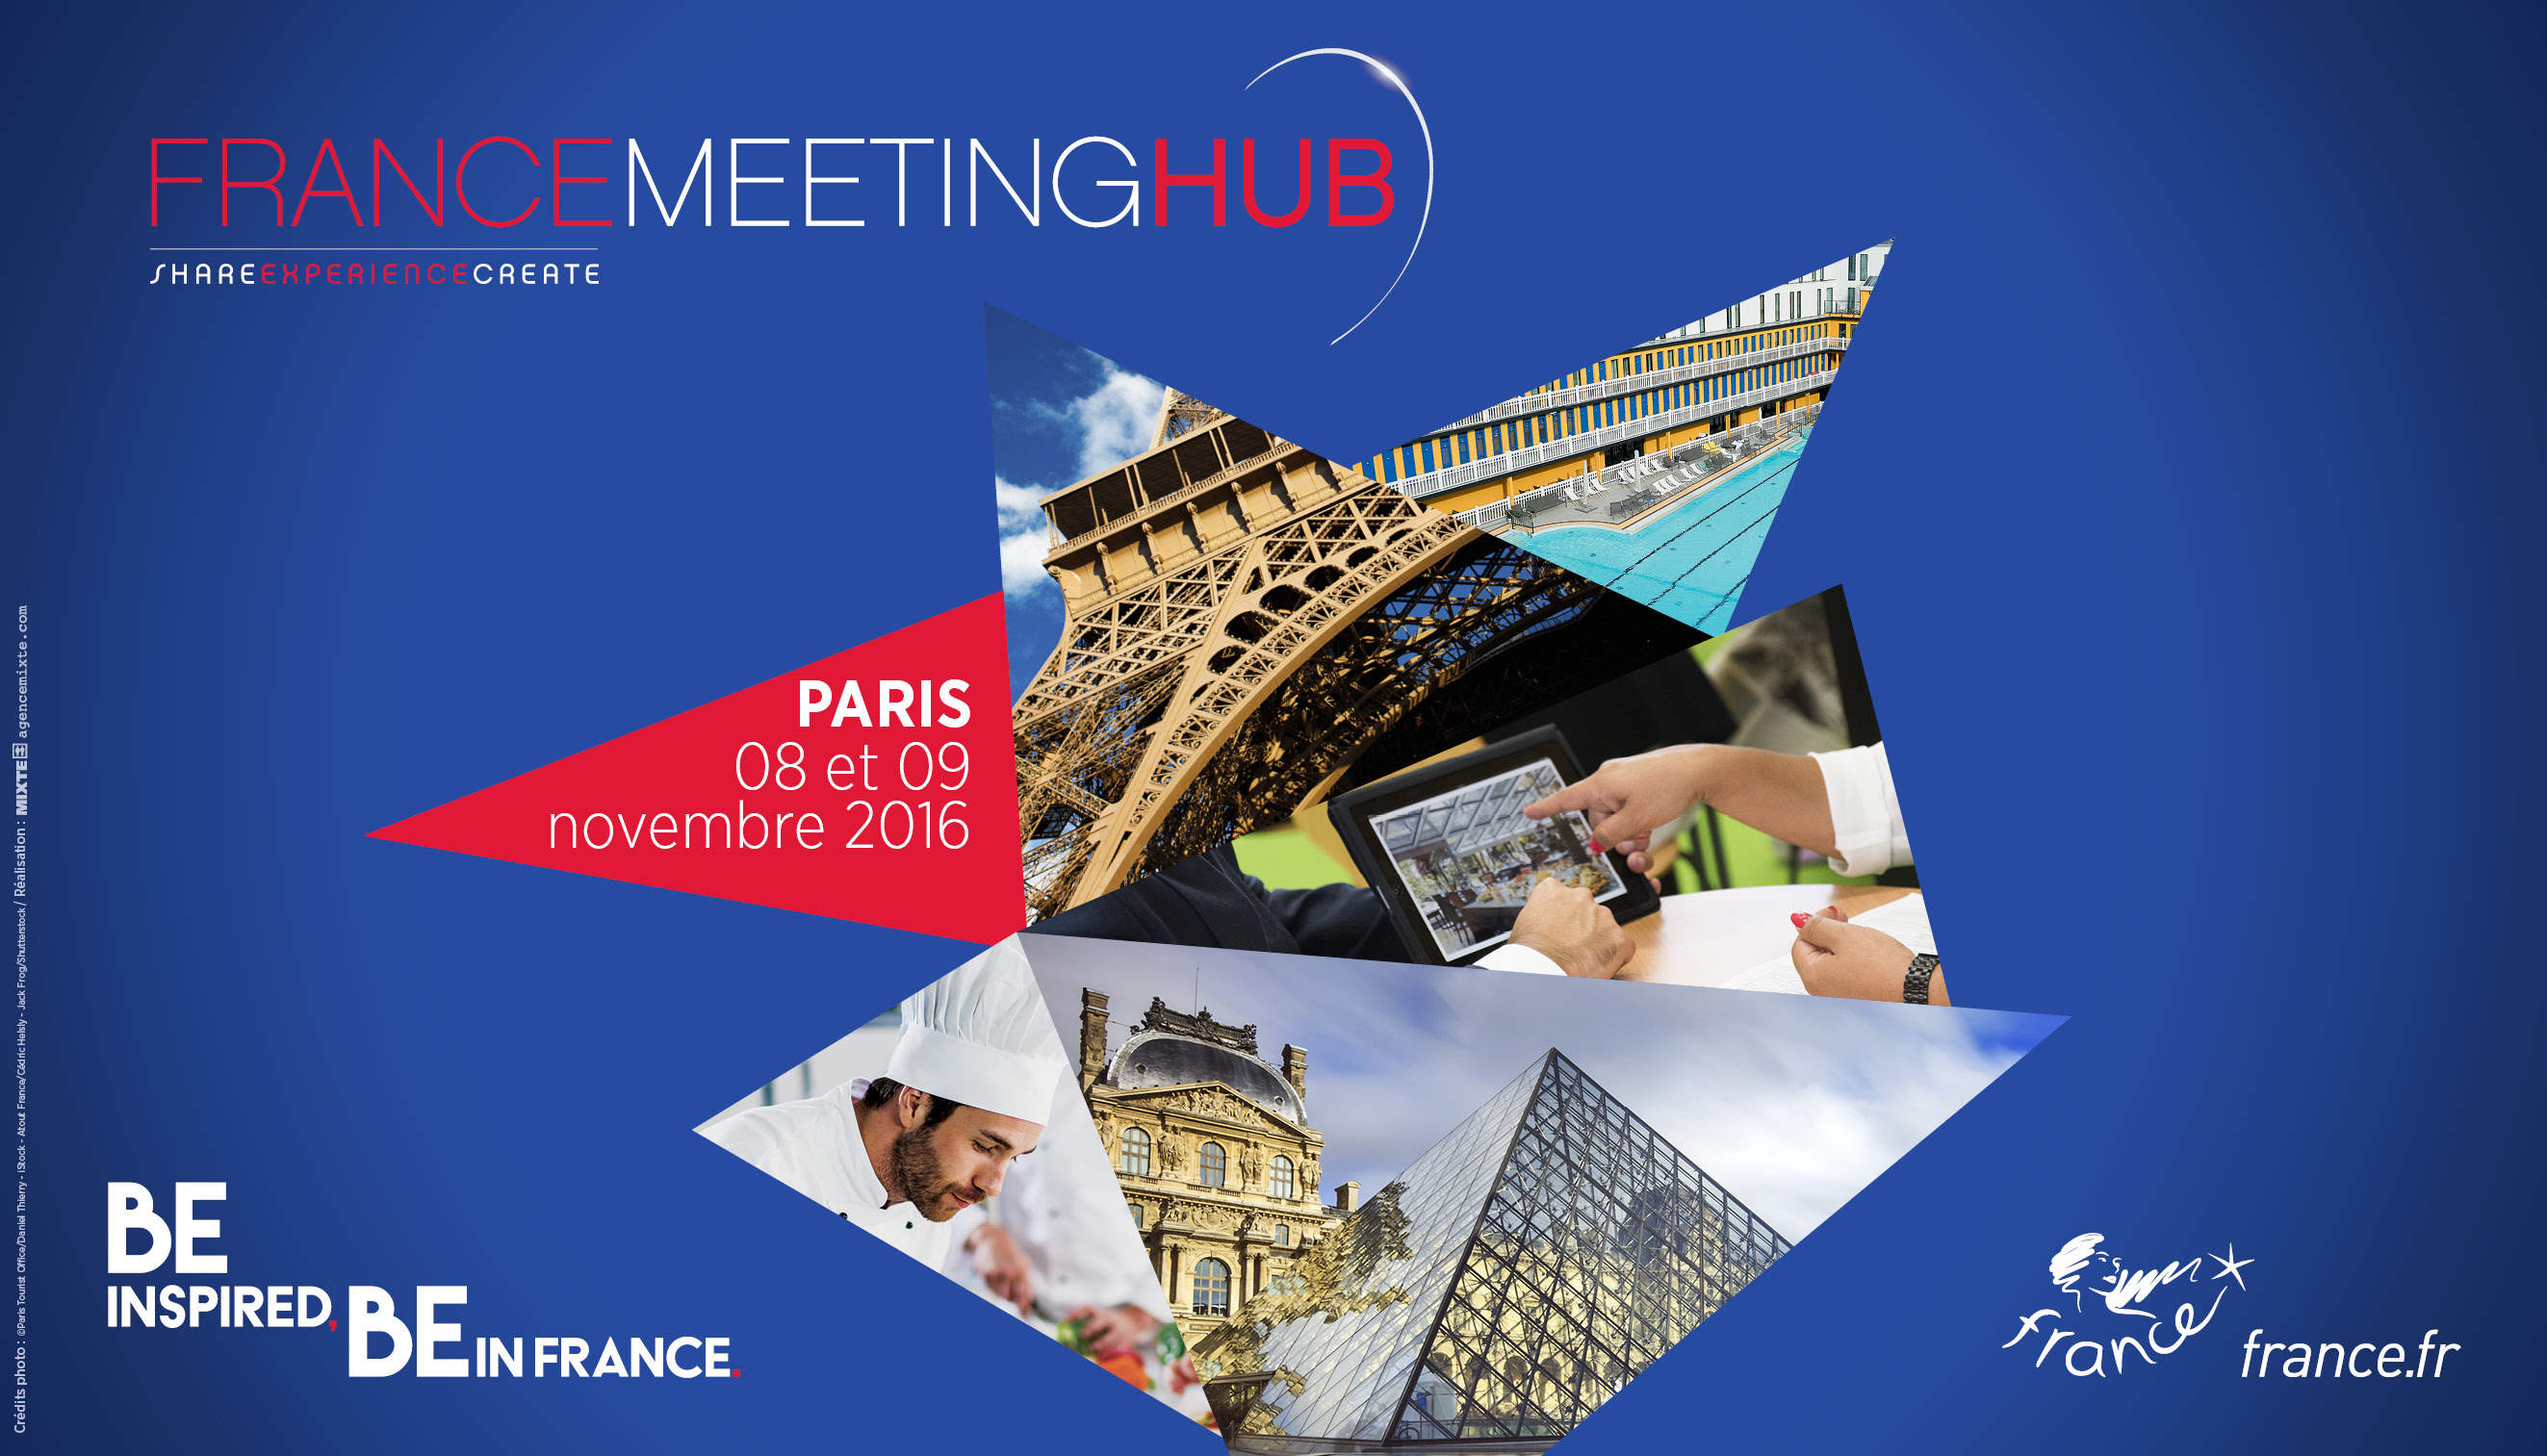 France Meeting Hub 2016, sous le signe de l'innovation